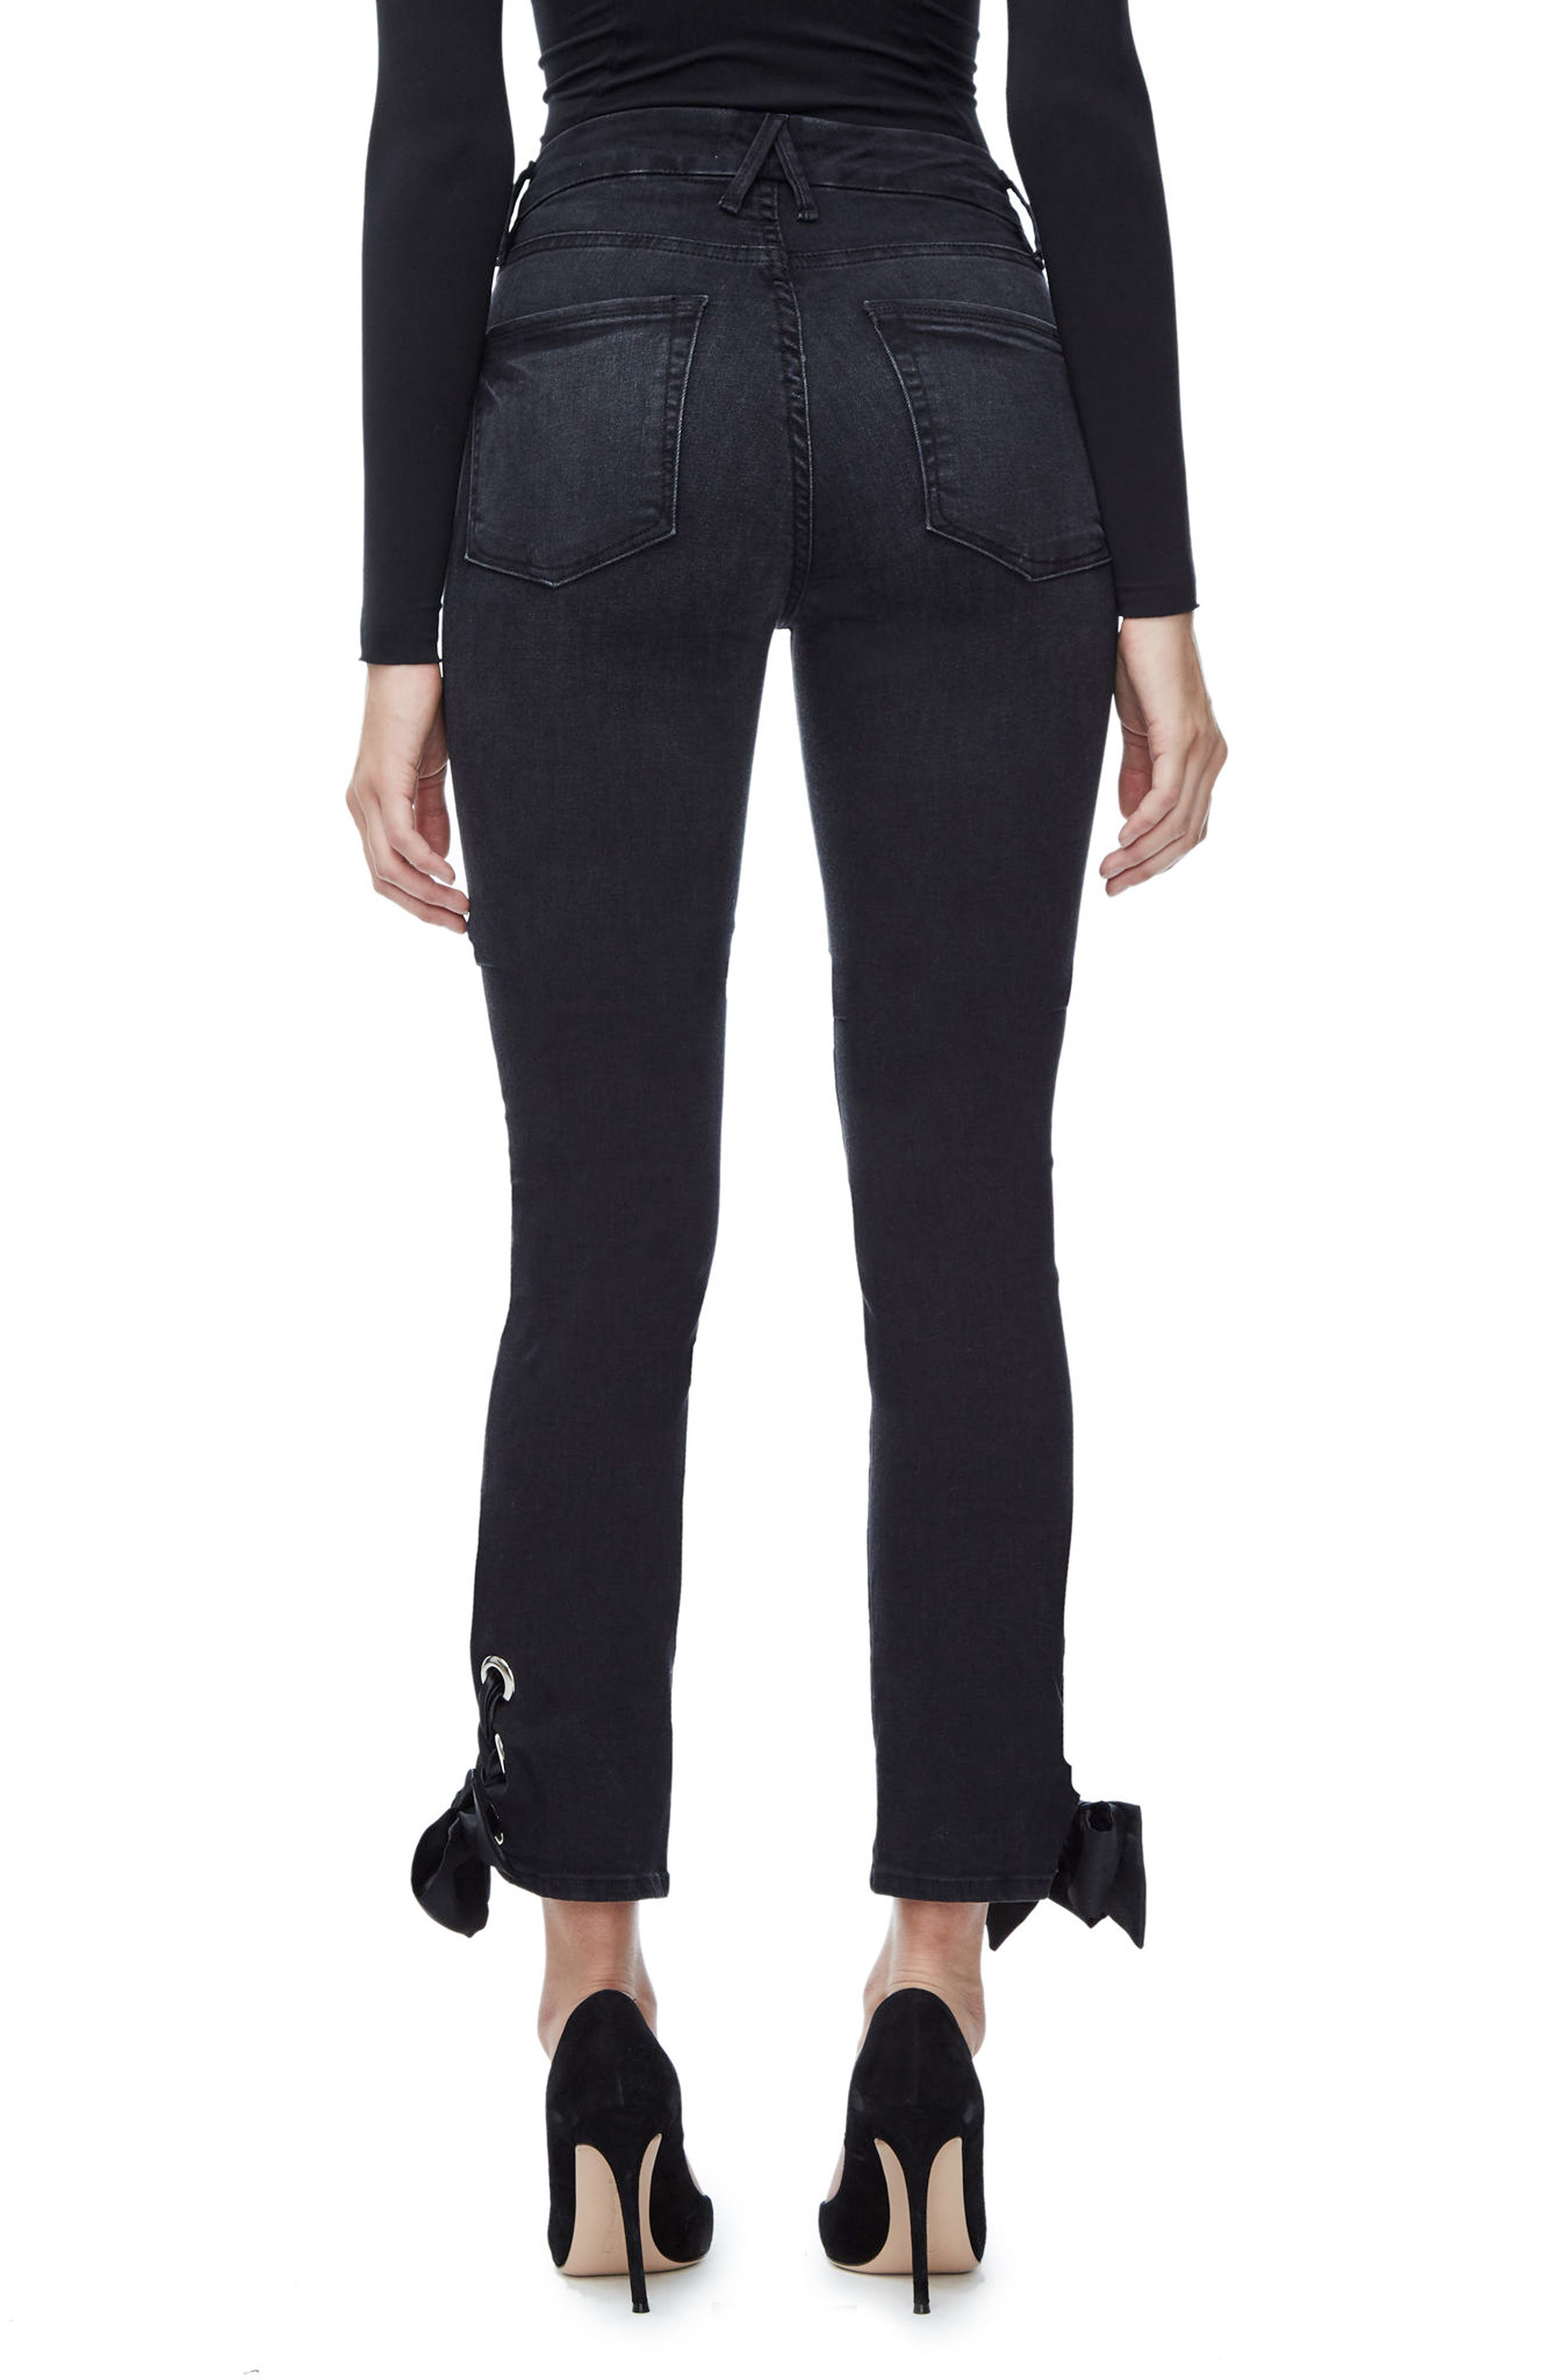 Alternate Image 2  - Good American Good Straight Ankle Lace Skinny Jeans (Black 010) (Extended Sizes)